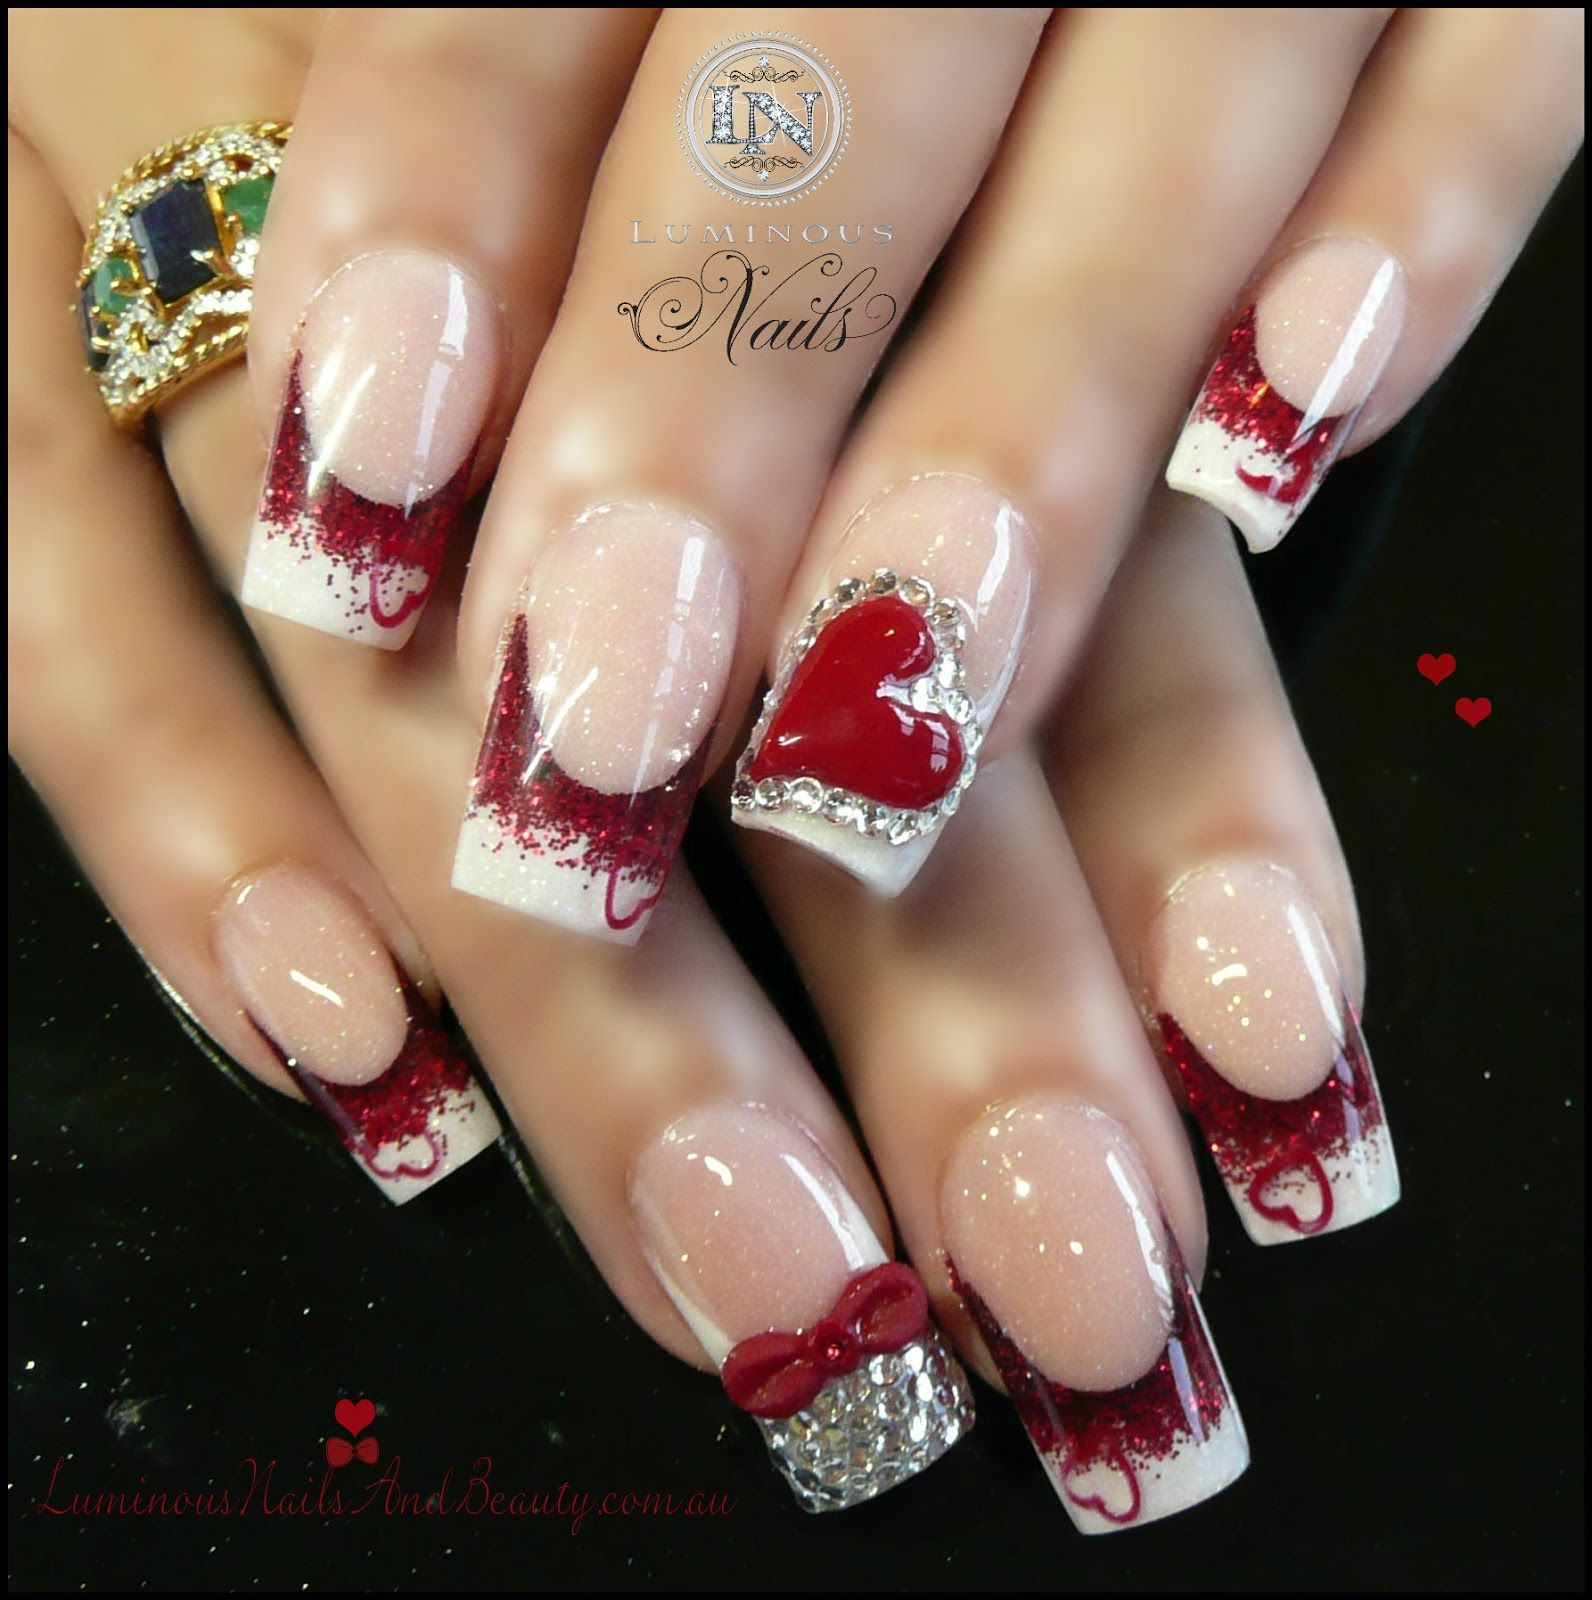 Gel nail designs 2015 are very popular among young girls. have a look at  the beautiful and amazing gel nail designs. All the gel nail designs are  amazing. - Red Nails Red & White Valentine Nails, With Bow, Heart